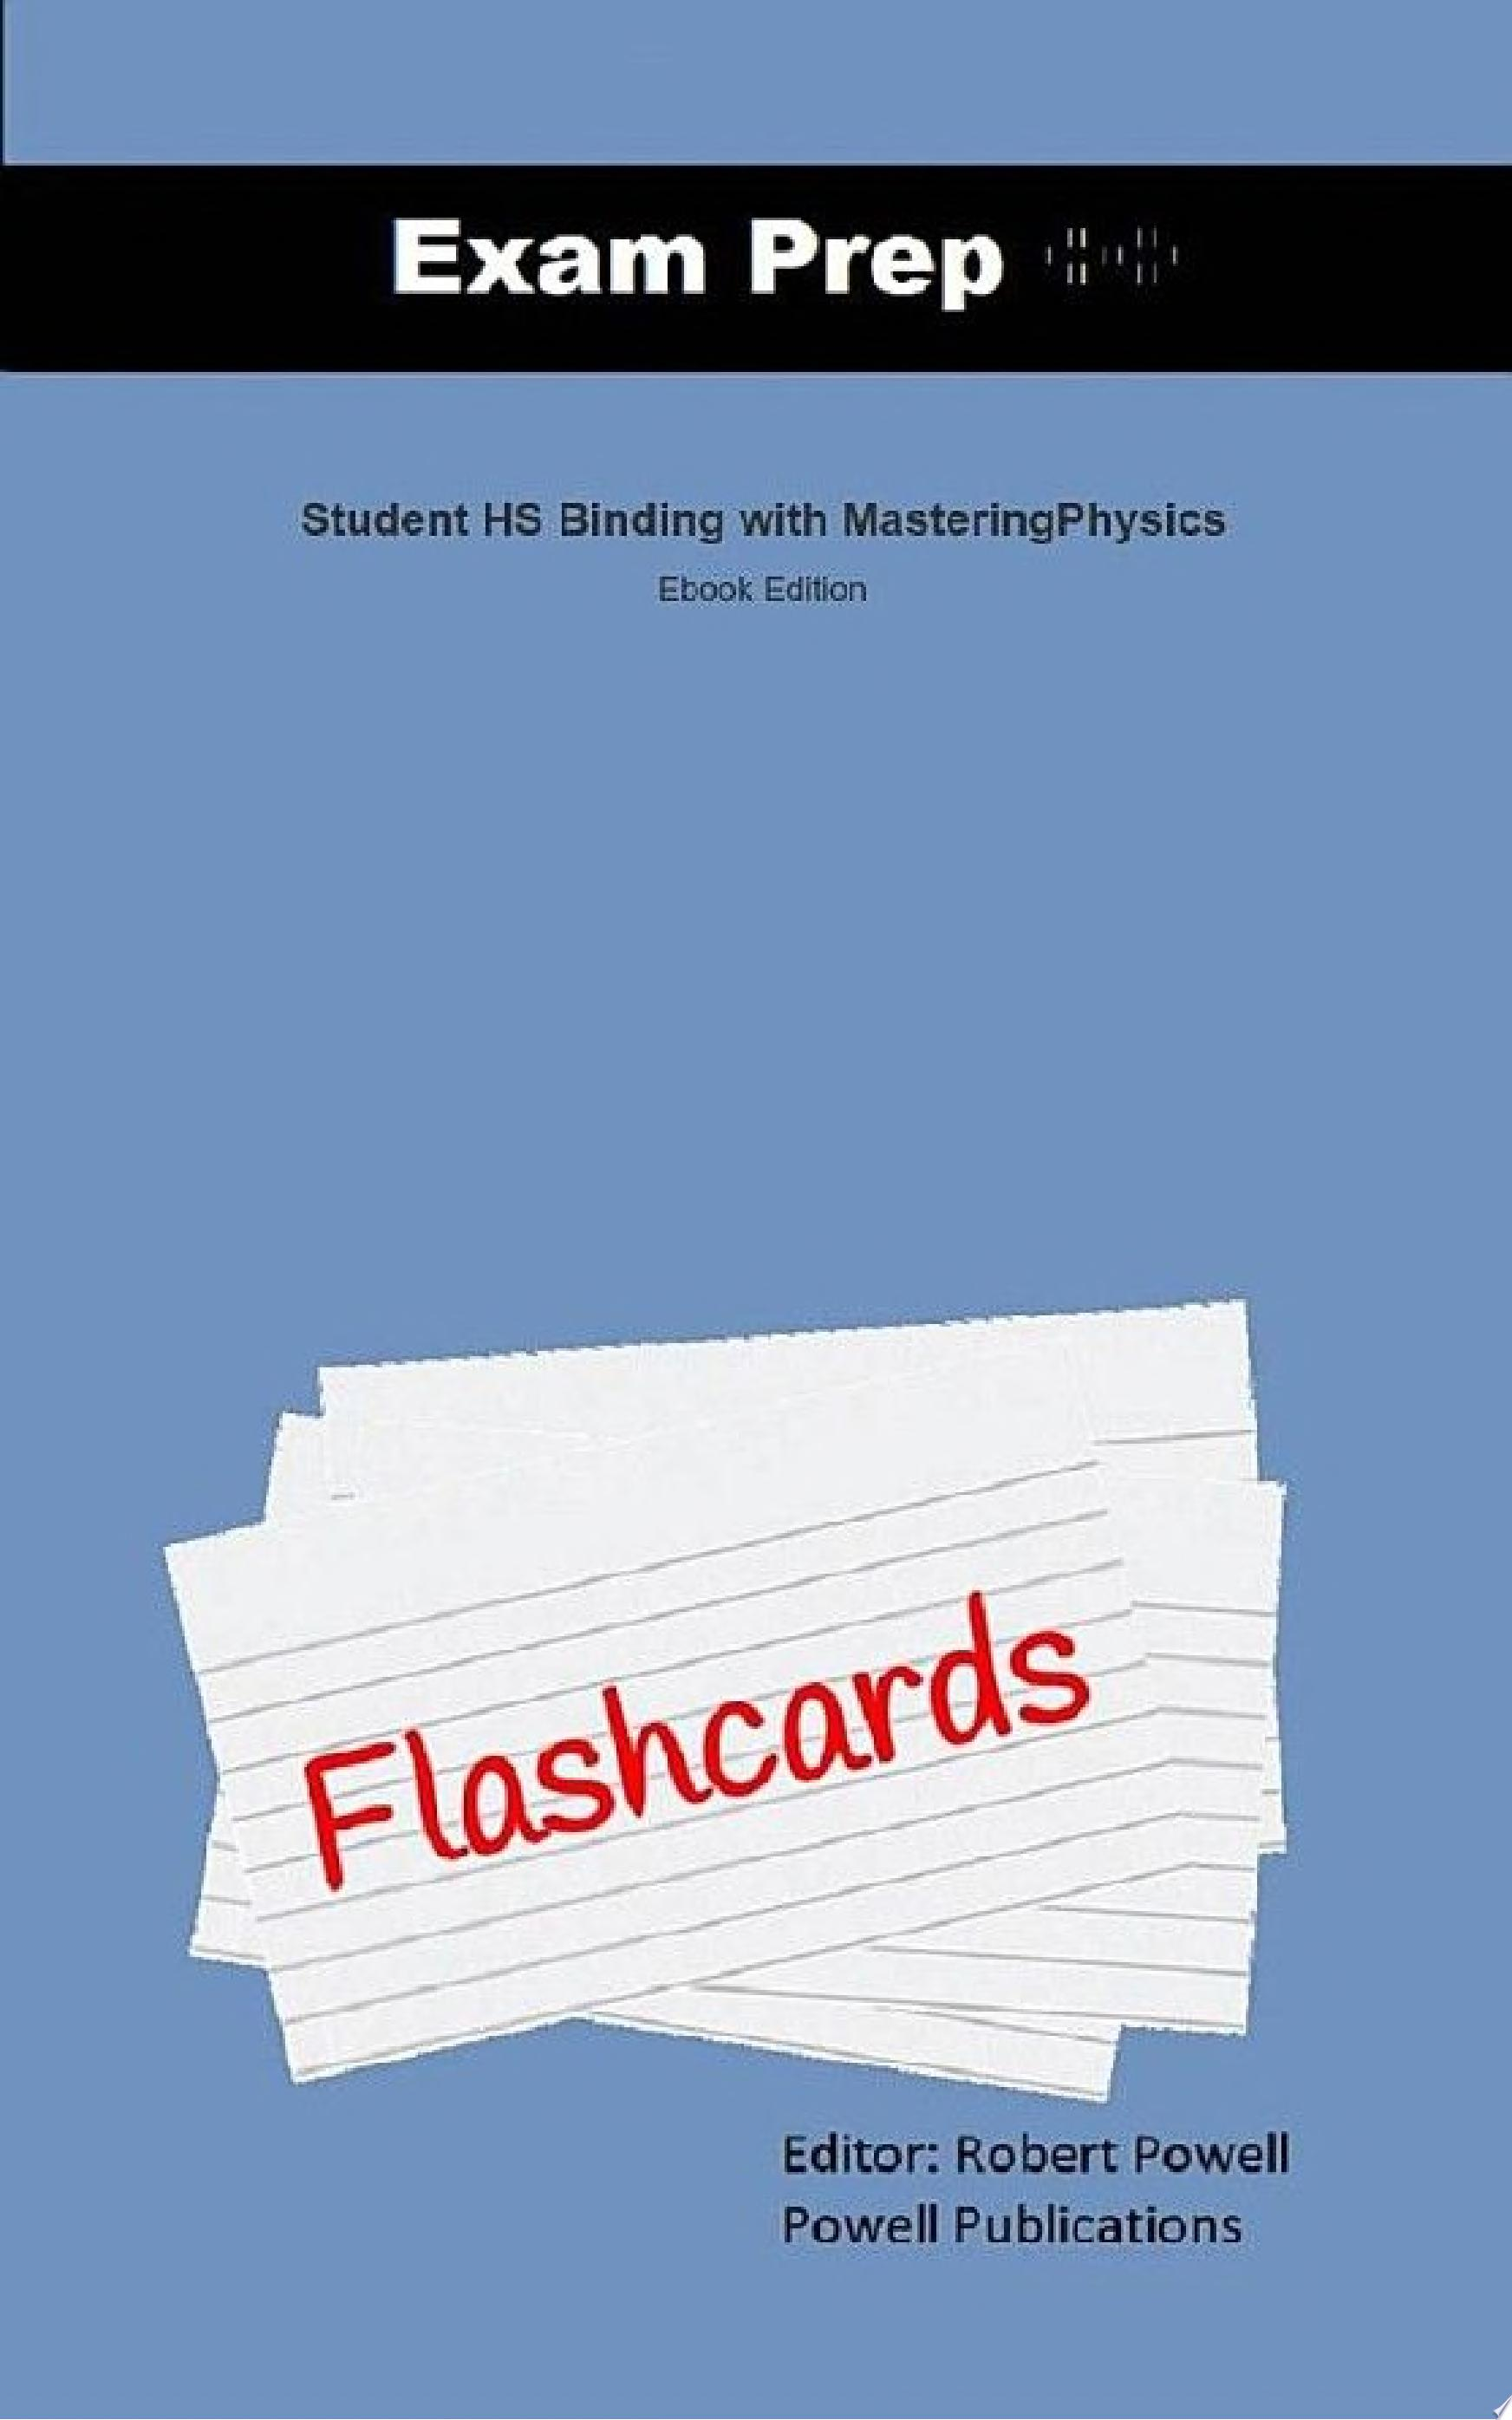 Exam Prep Flash Cards for Student HS Binding